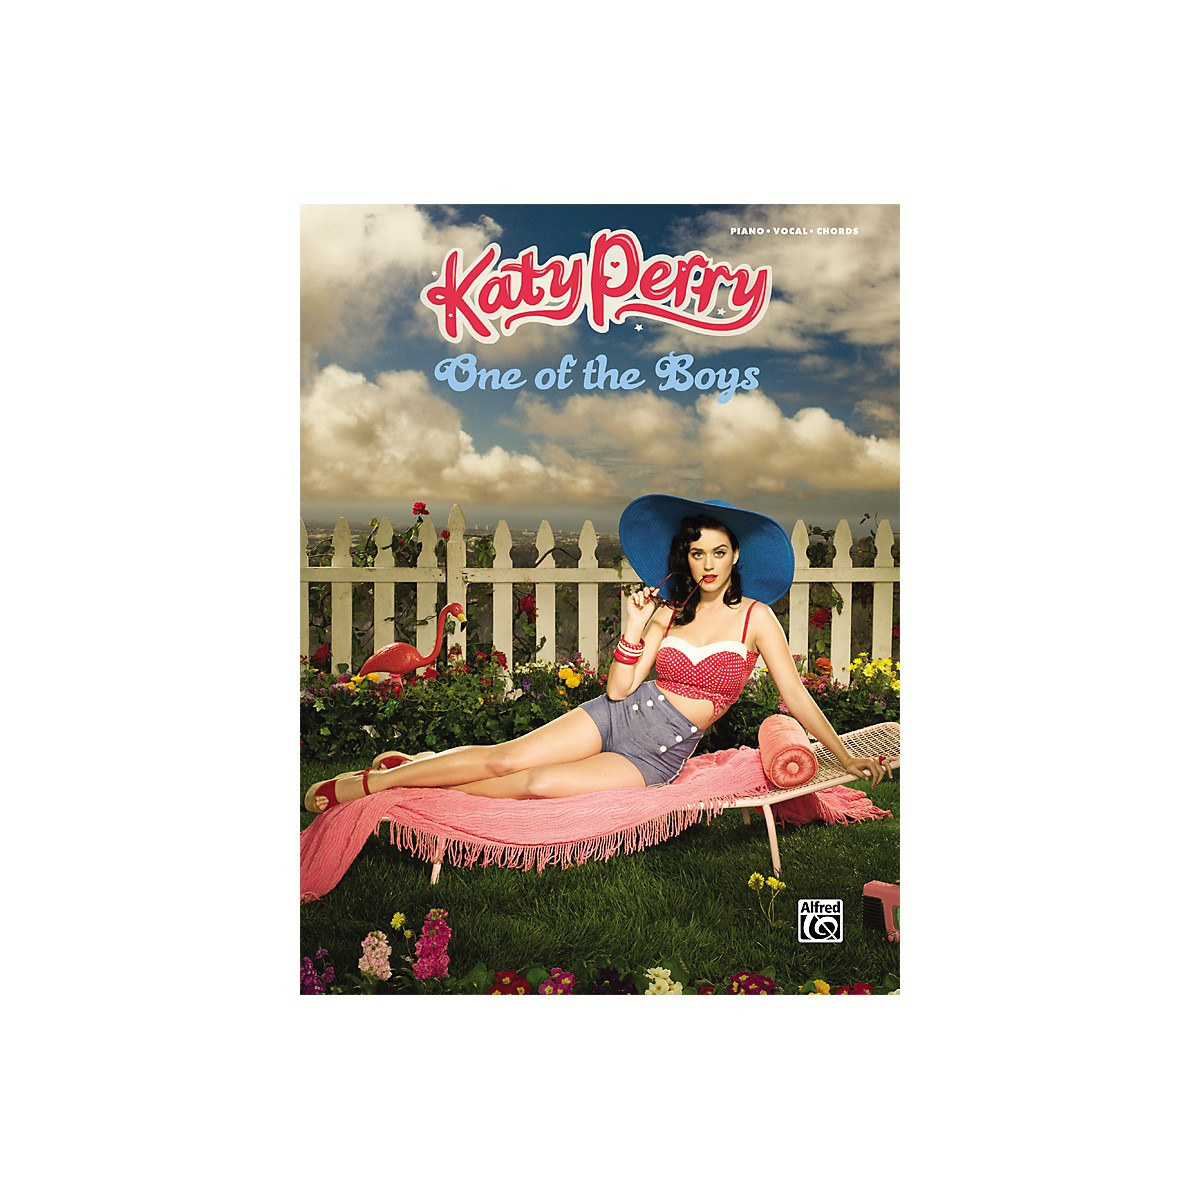 Alfred Katy Perry One of the Boys